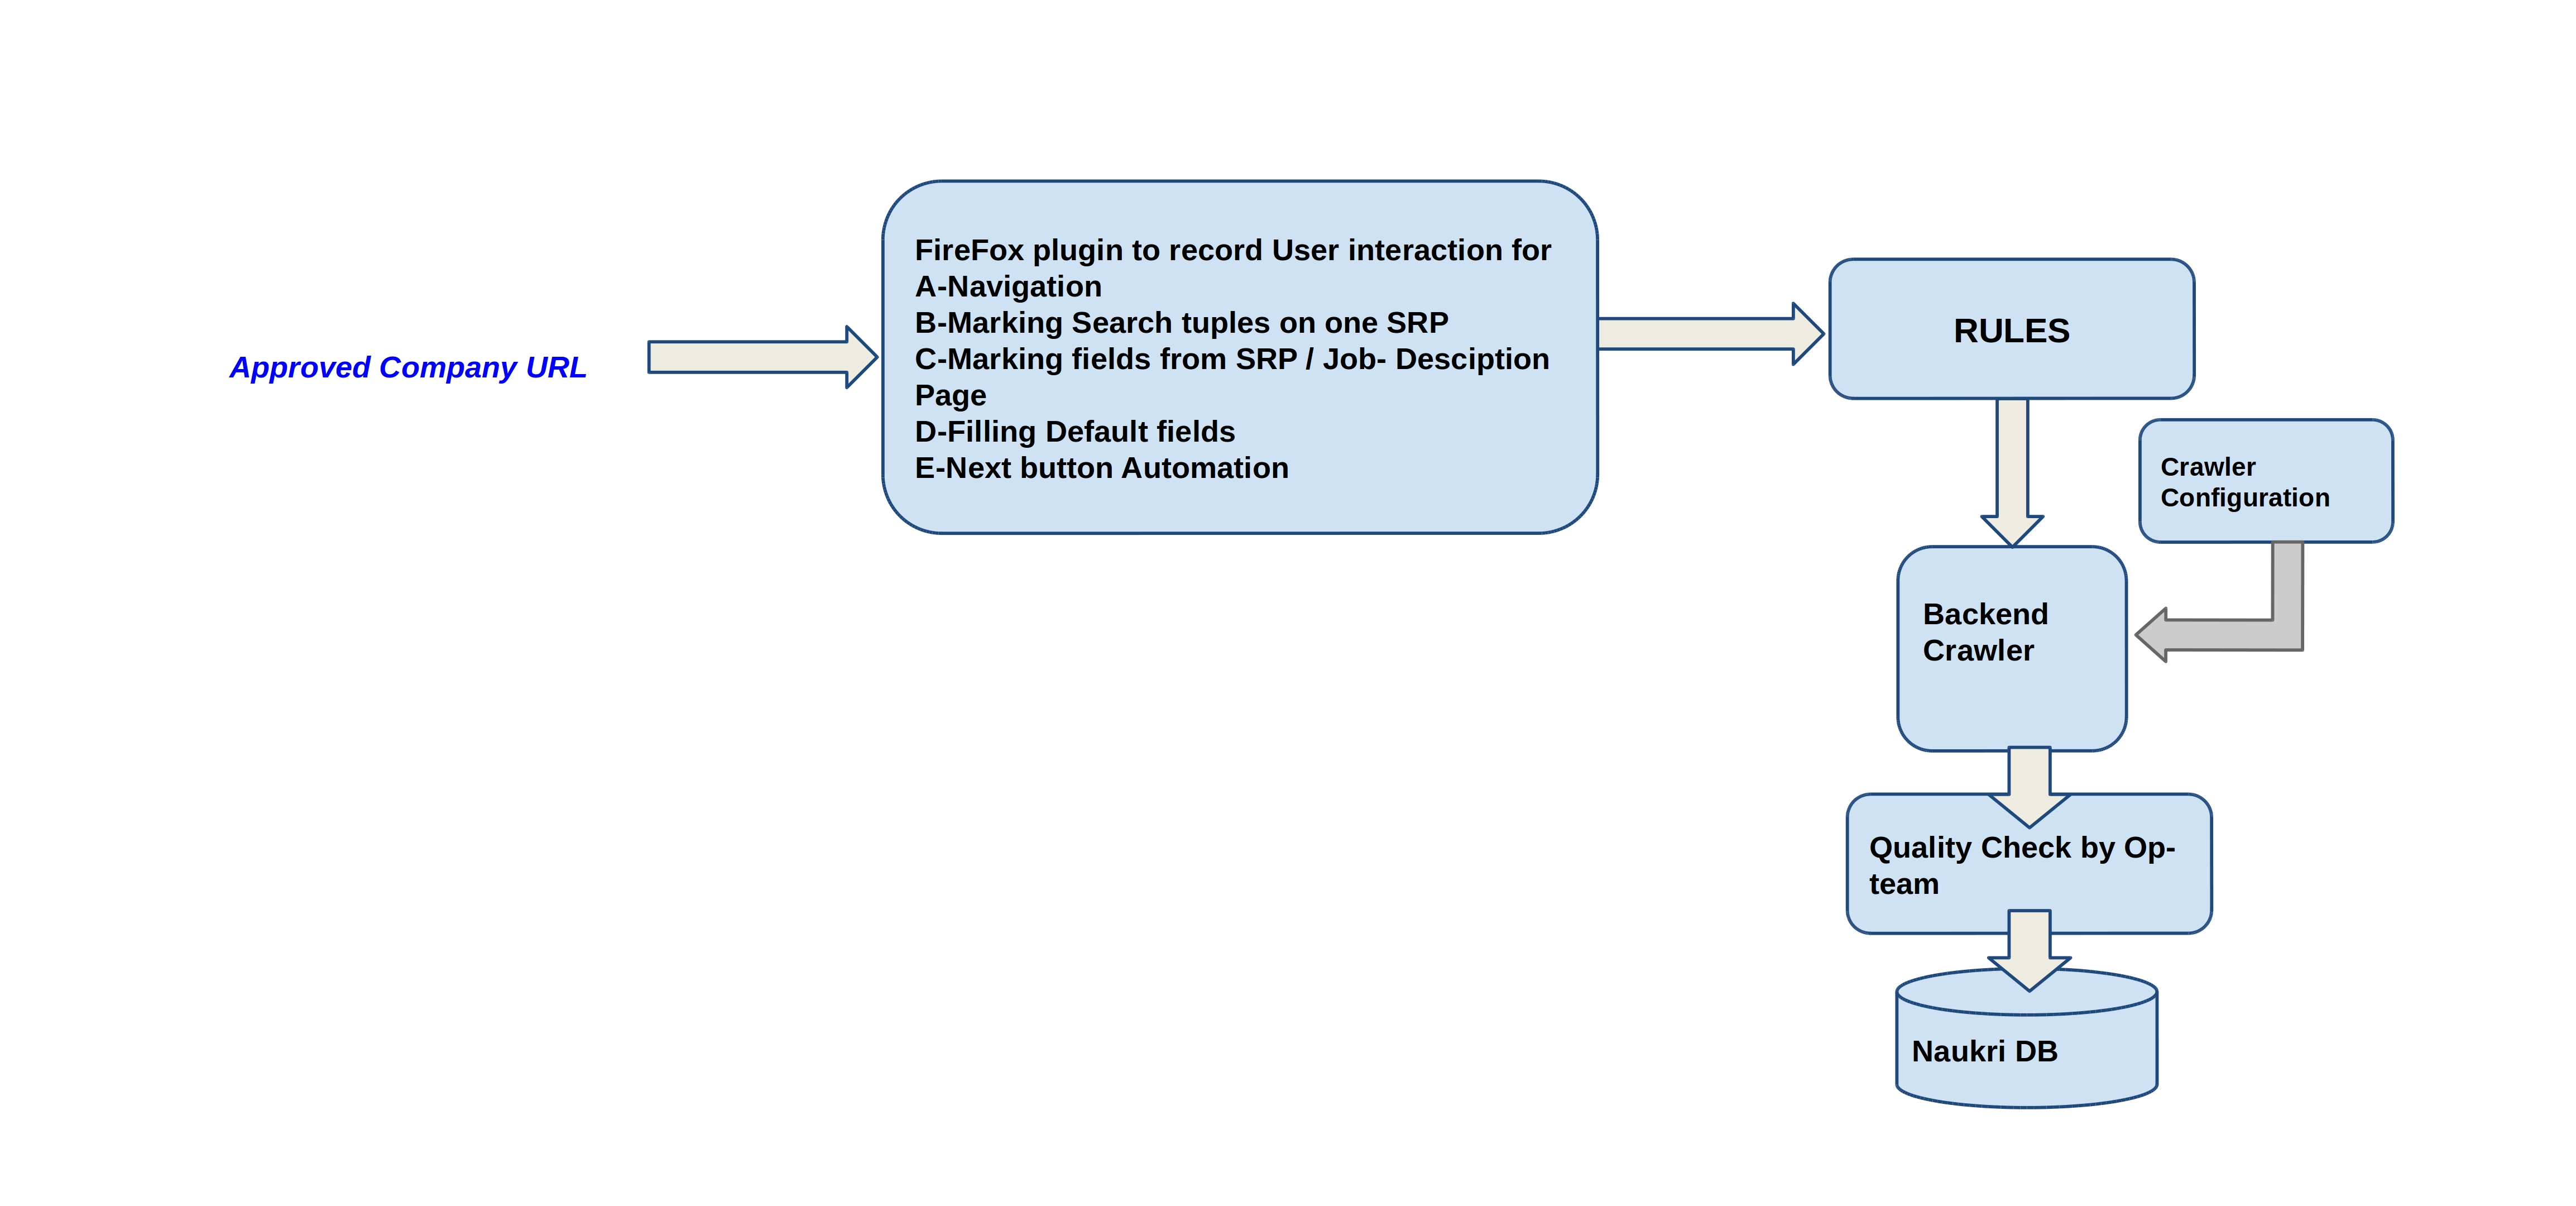 A possible work-flow for given approach